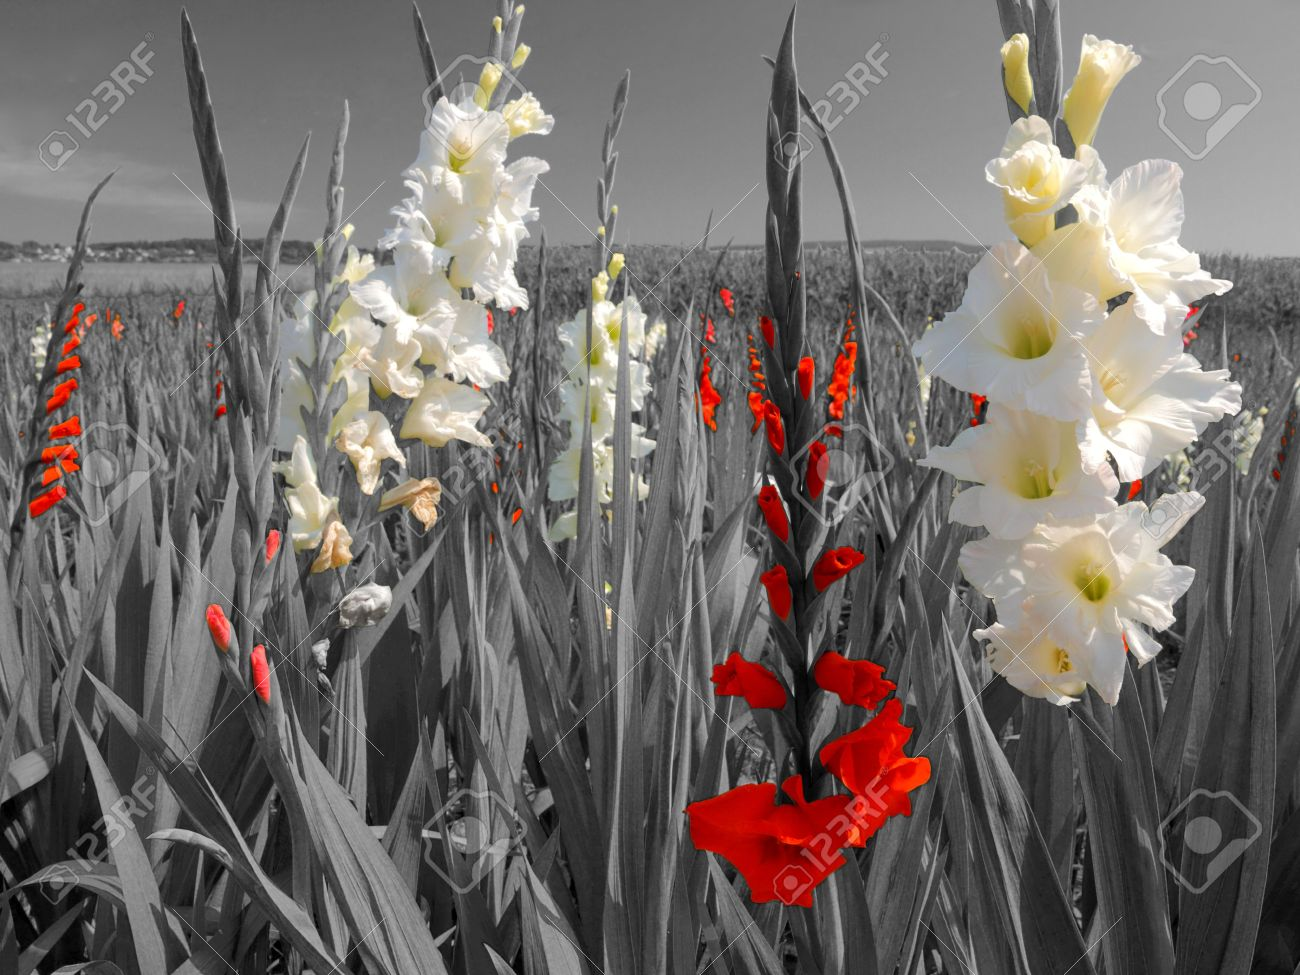 bright white and red flower blossoms in a black and white landscape Stock Photo - 7506214